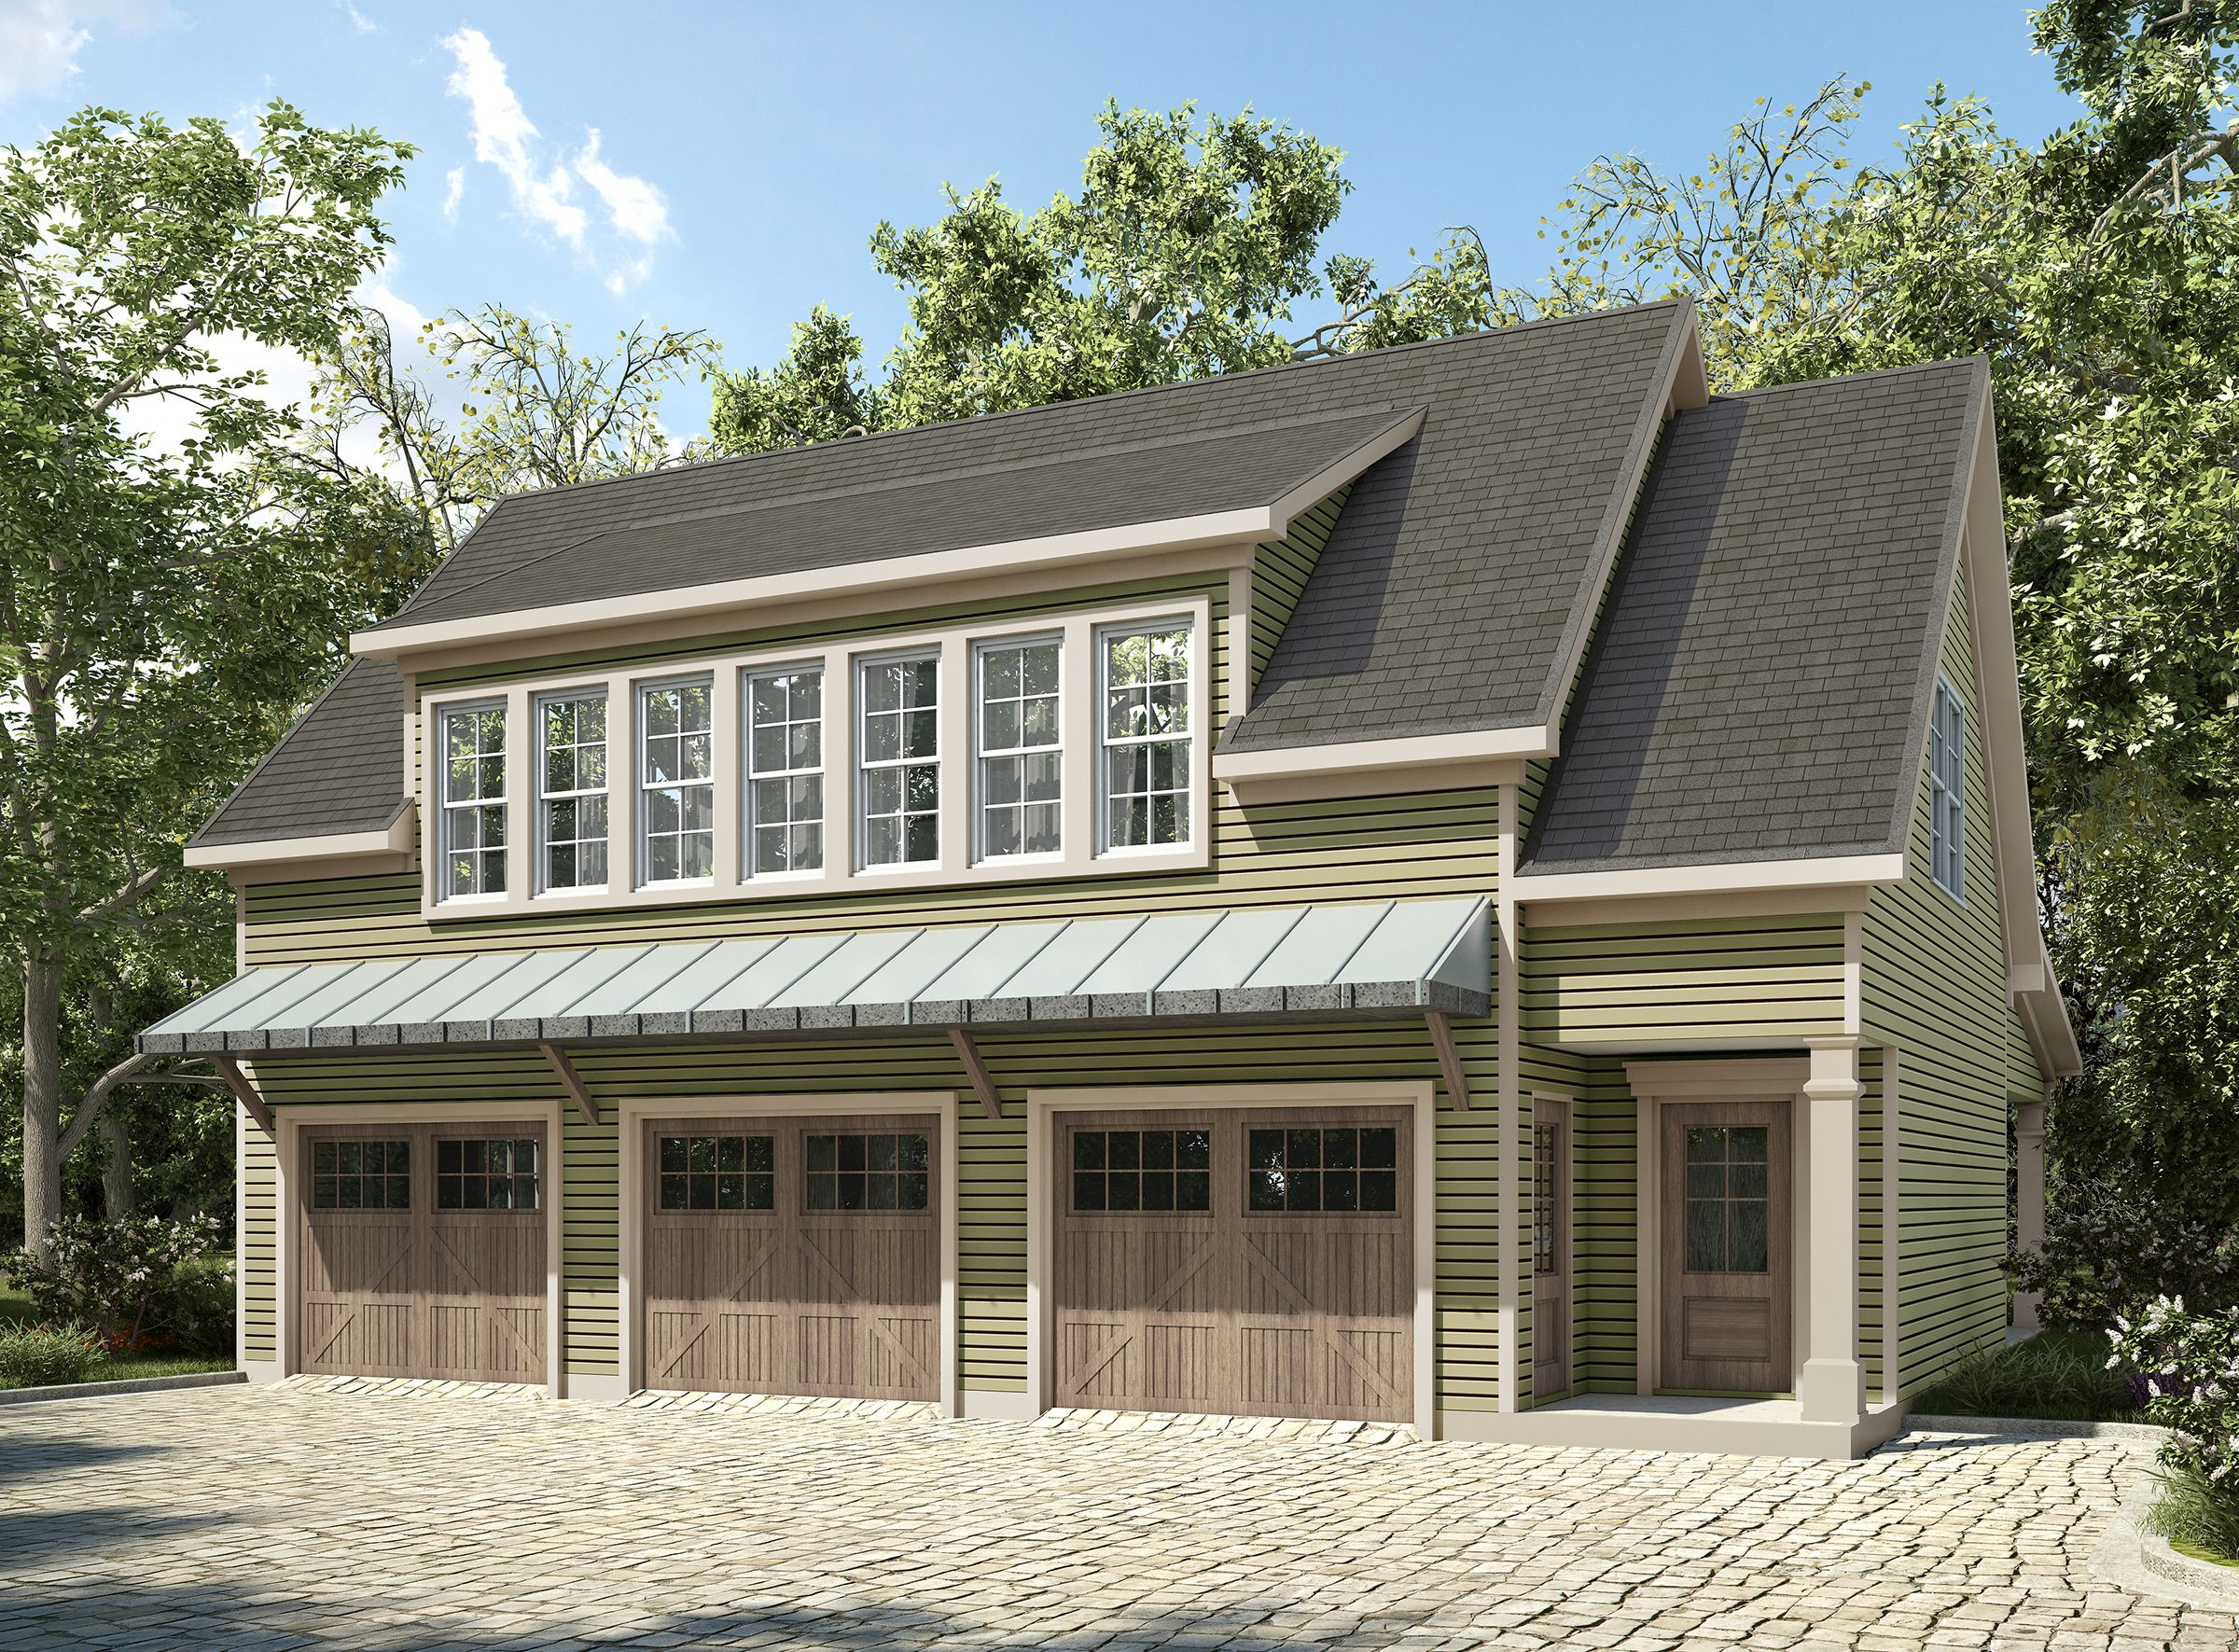 plan 36057dk 3 bay carriage house plan with shed roof in